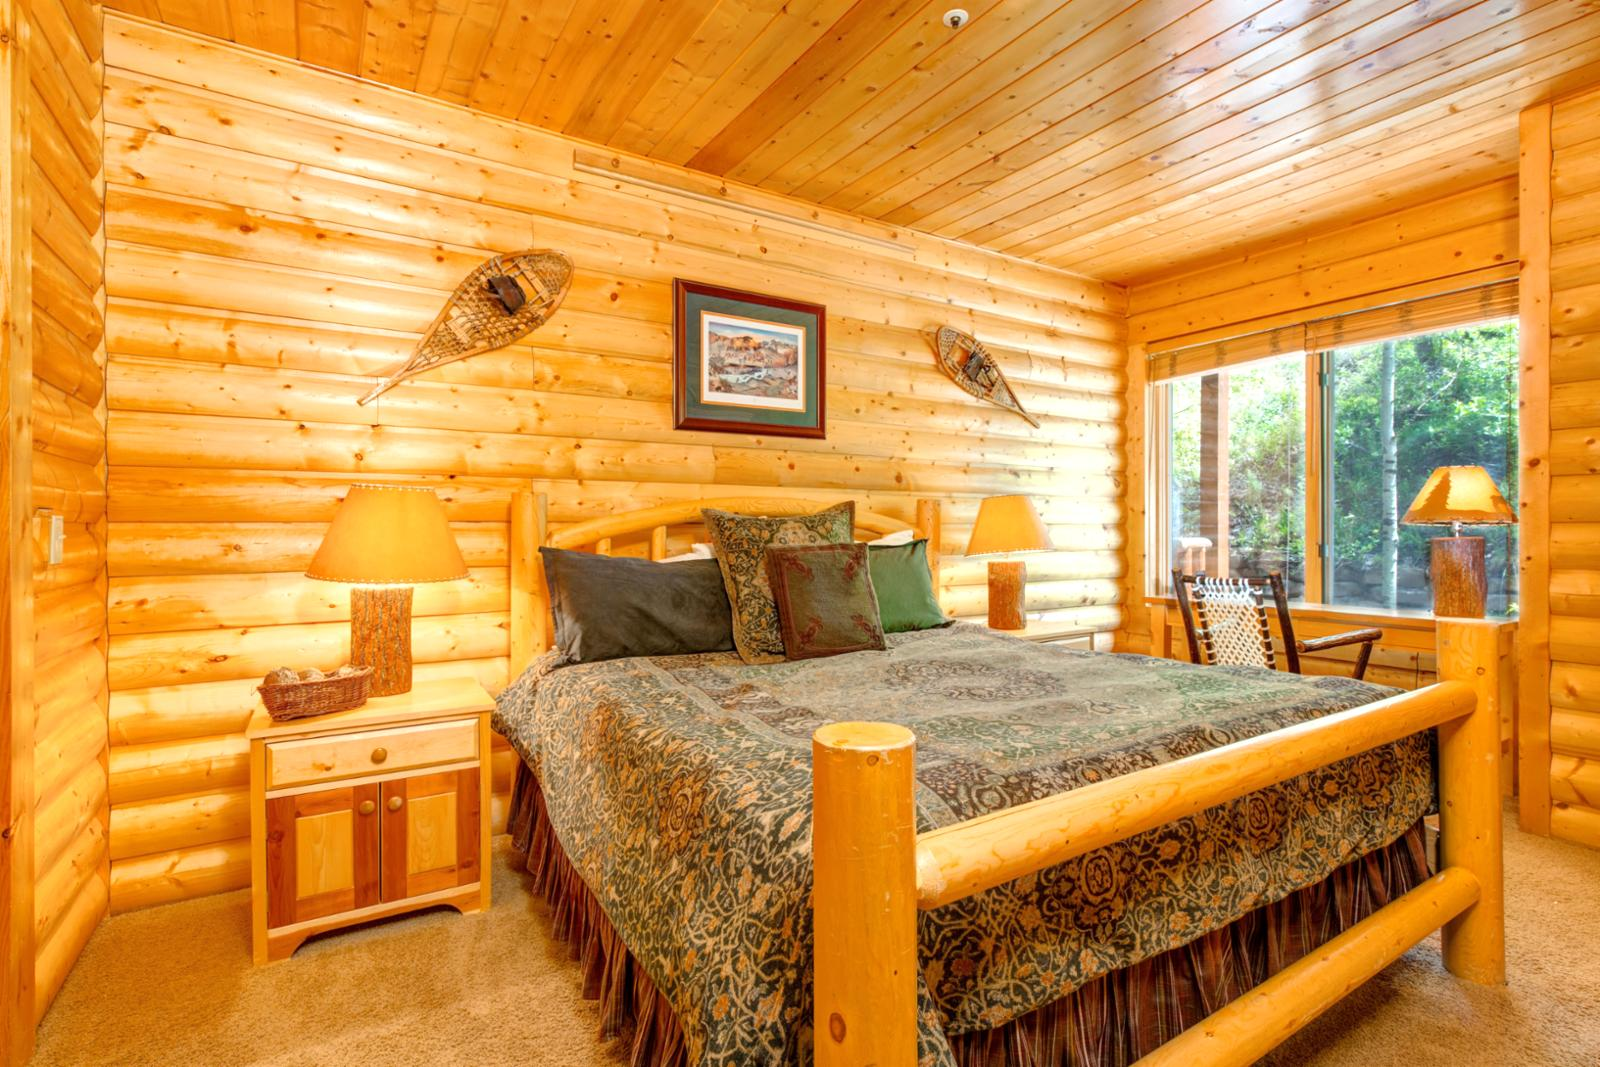 A quiet king size bed located in the back of the condo with views of trees and mountainside